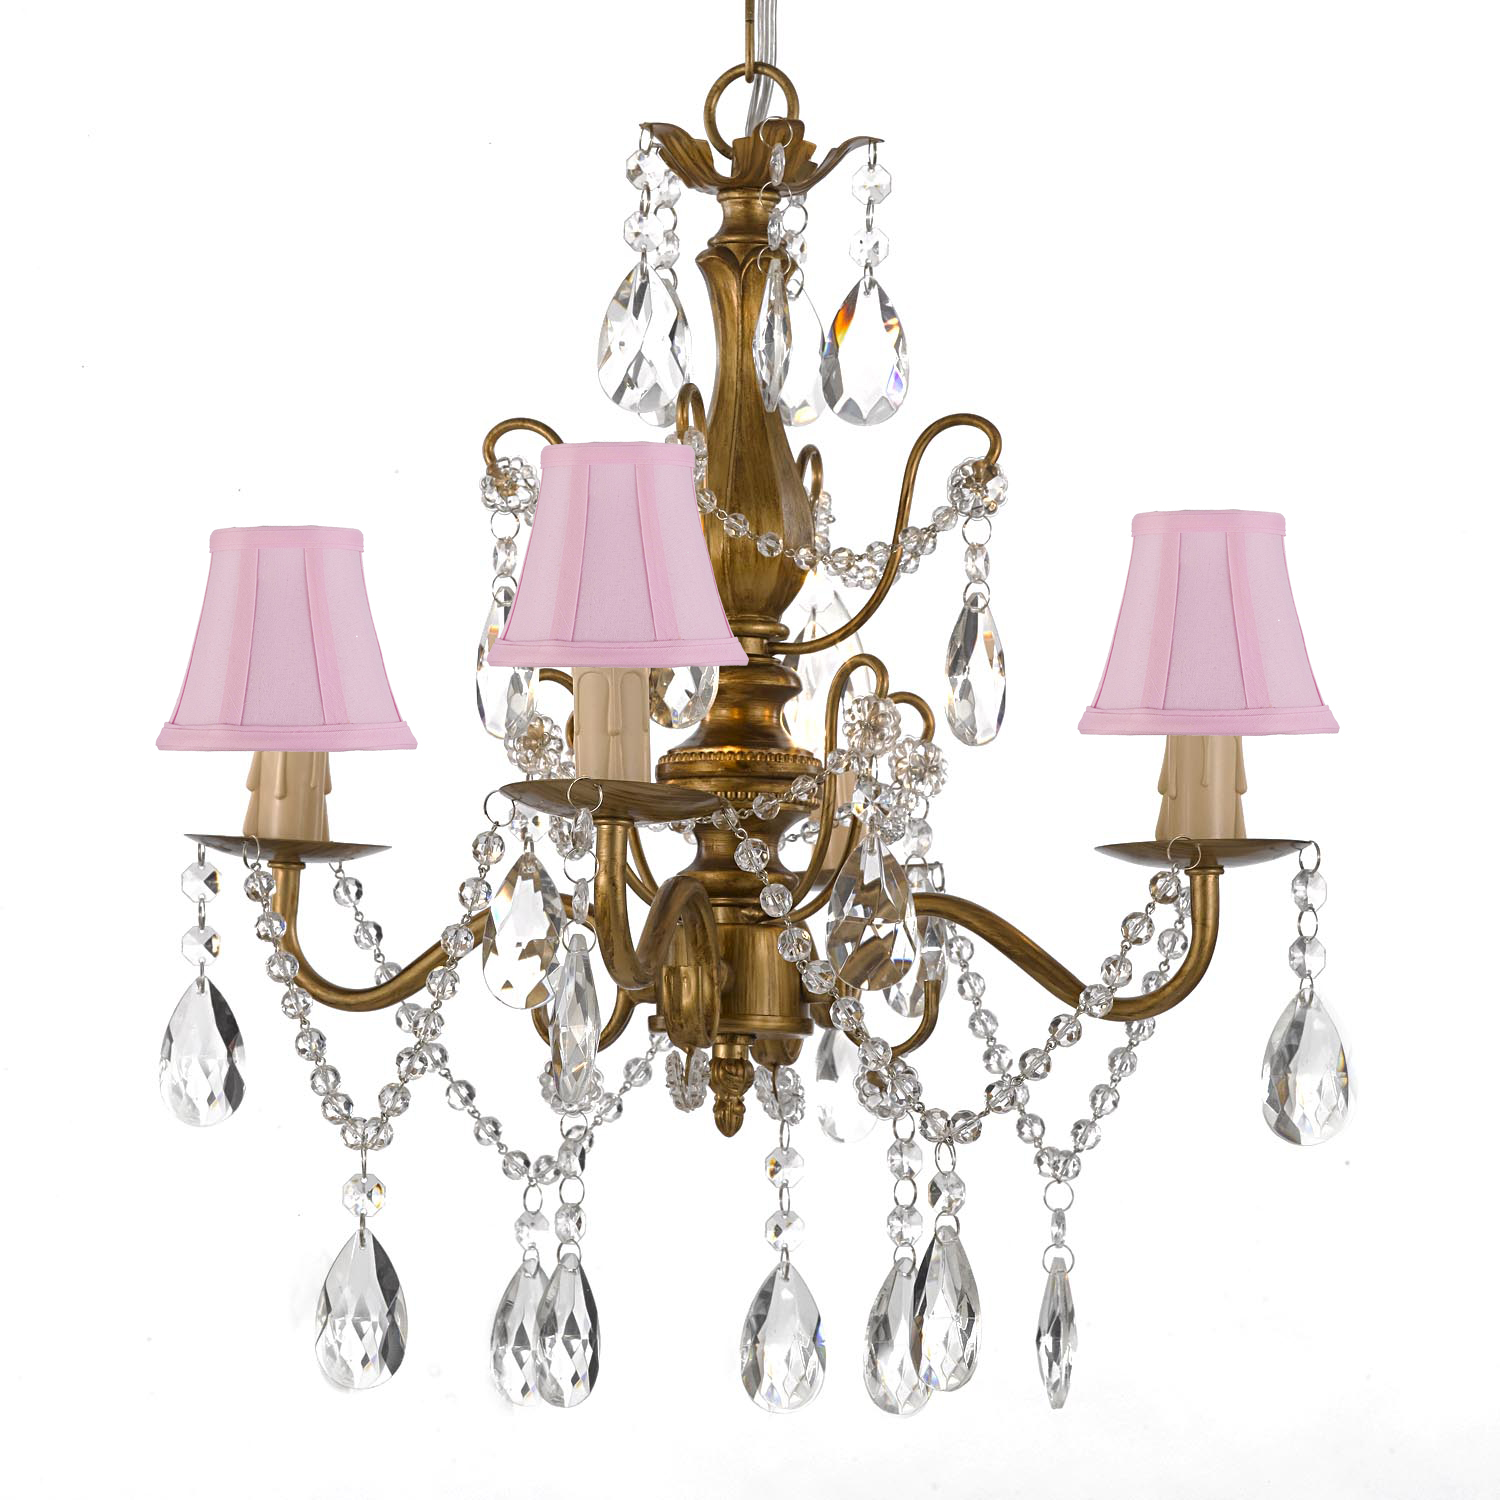 "Wrought Iron and Crystal 4 Light Gold Chandelier H 14"" X W 15"" Pendant Lighting Hardwire and Plug In with Shades"